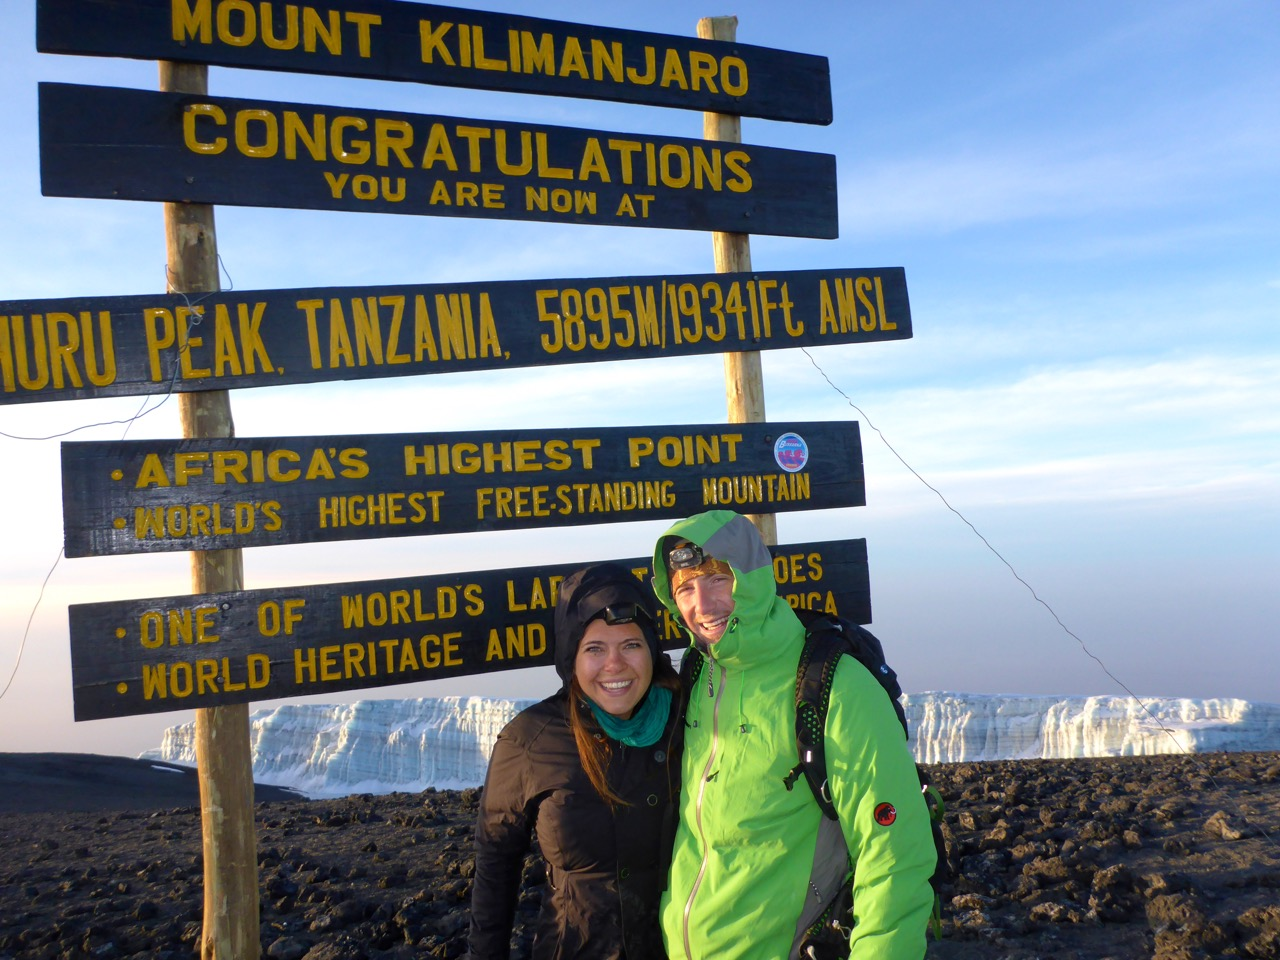 Kilimanjaro Summit Day Uhuru Peak